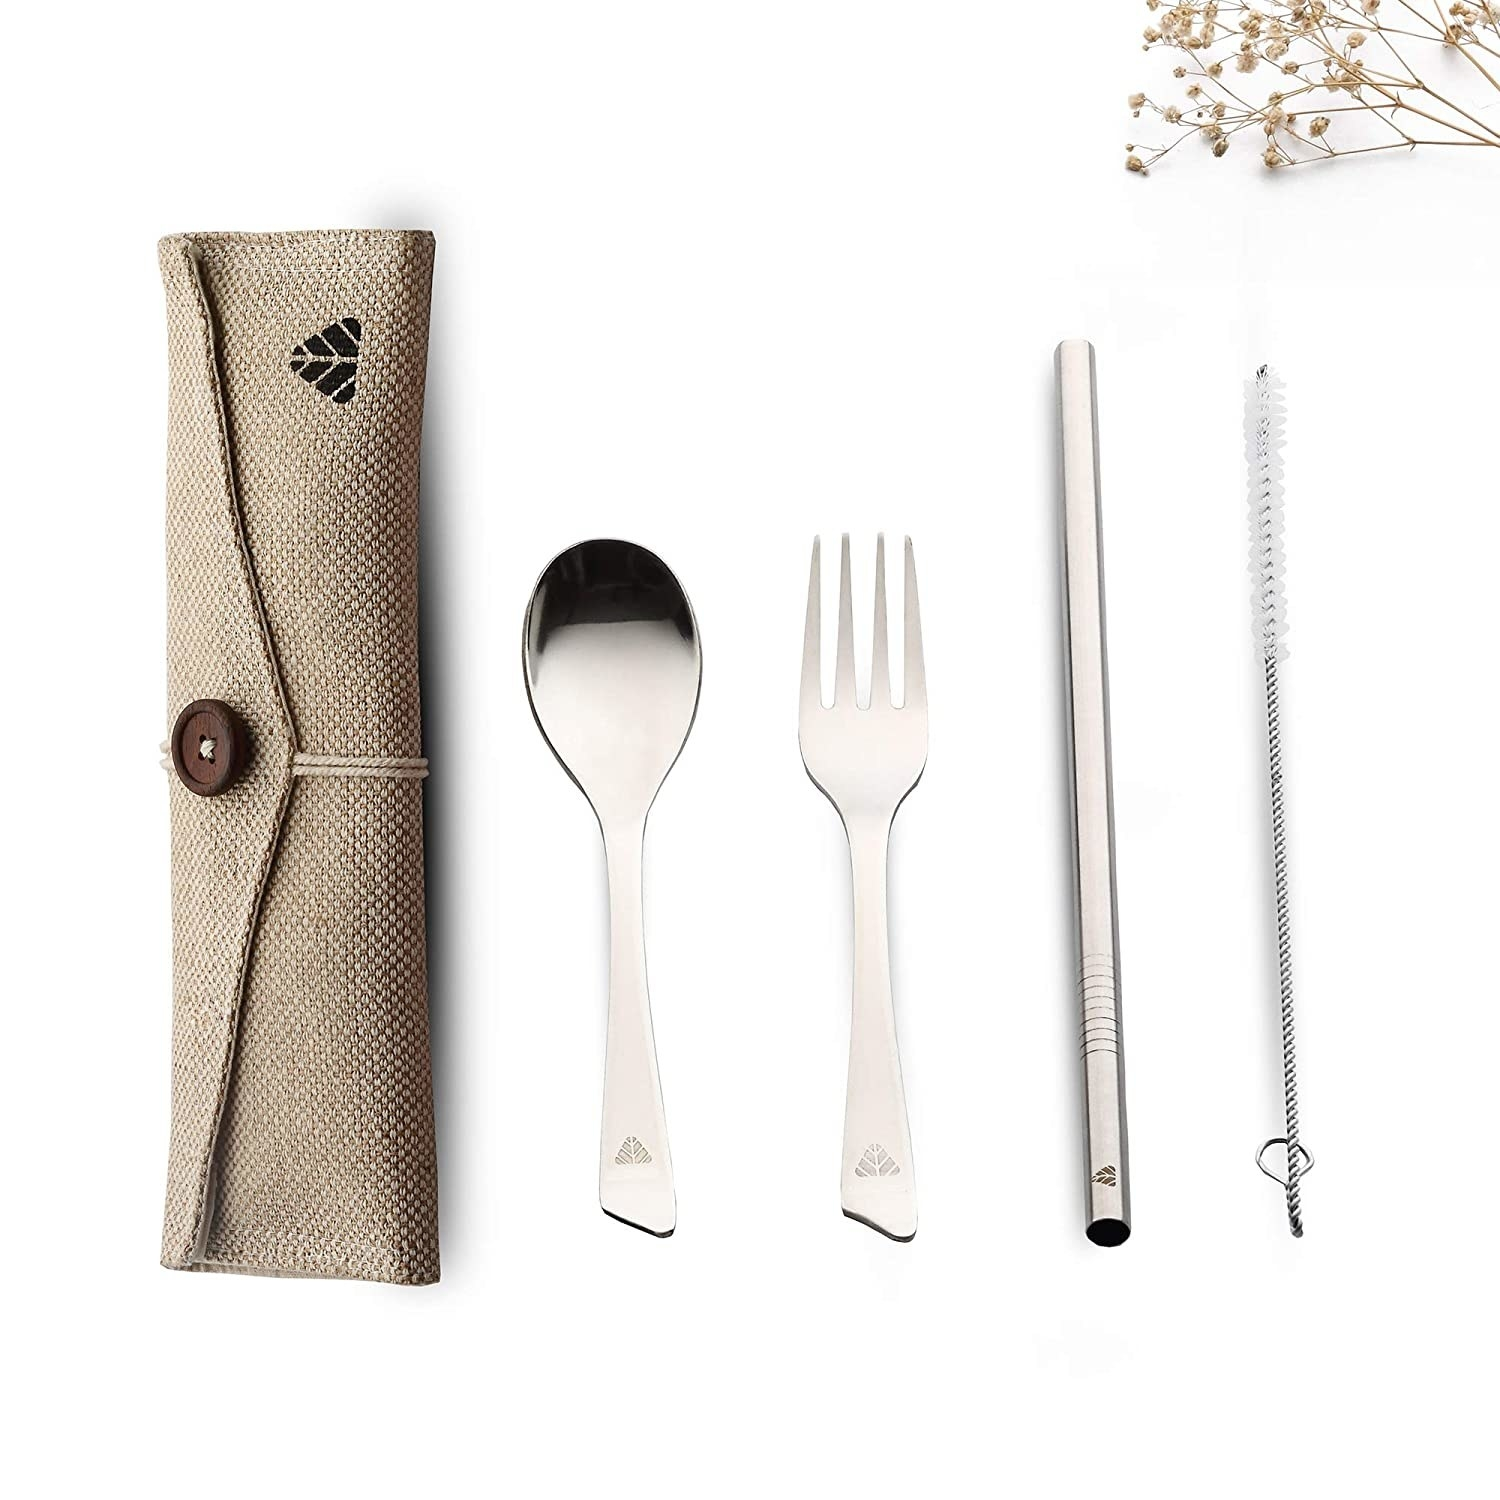 A set of travel cutlery